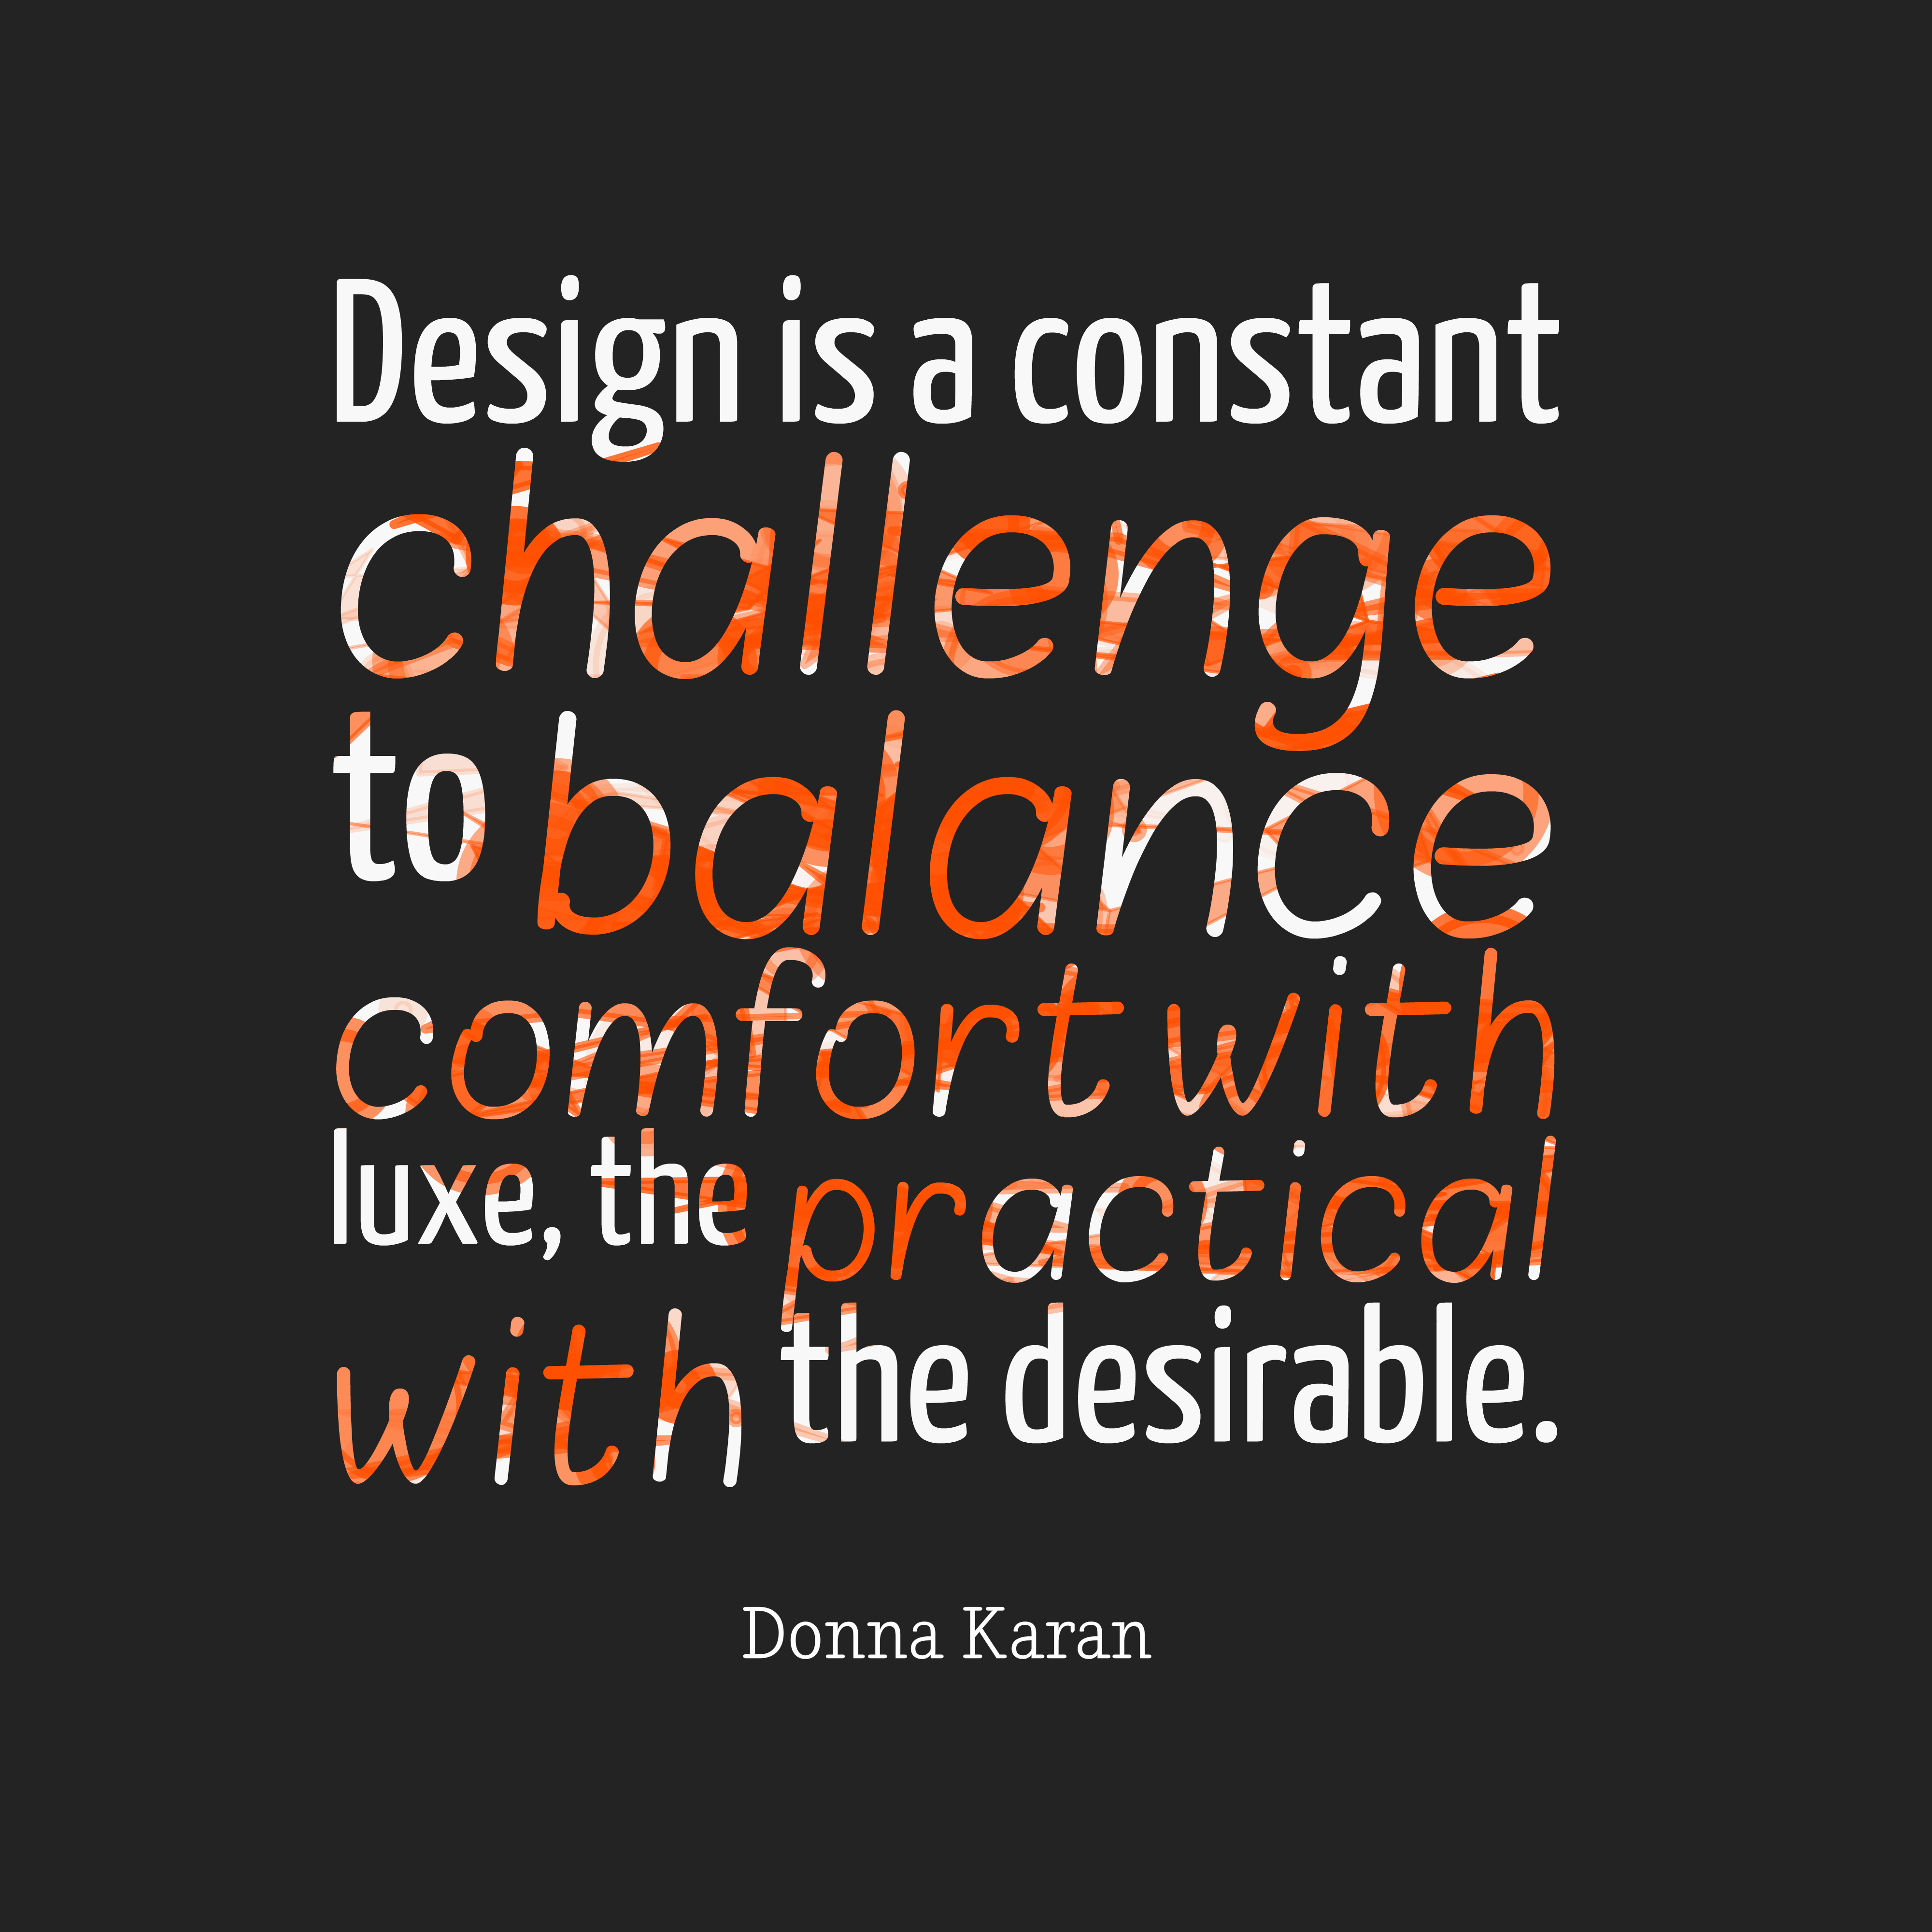 Quotes image of Design is a constant challenge to balance comfort with luxe, the practical with the desirable.